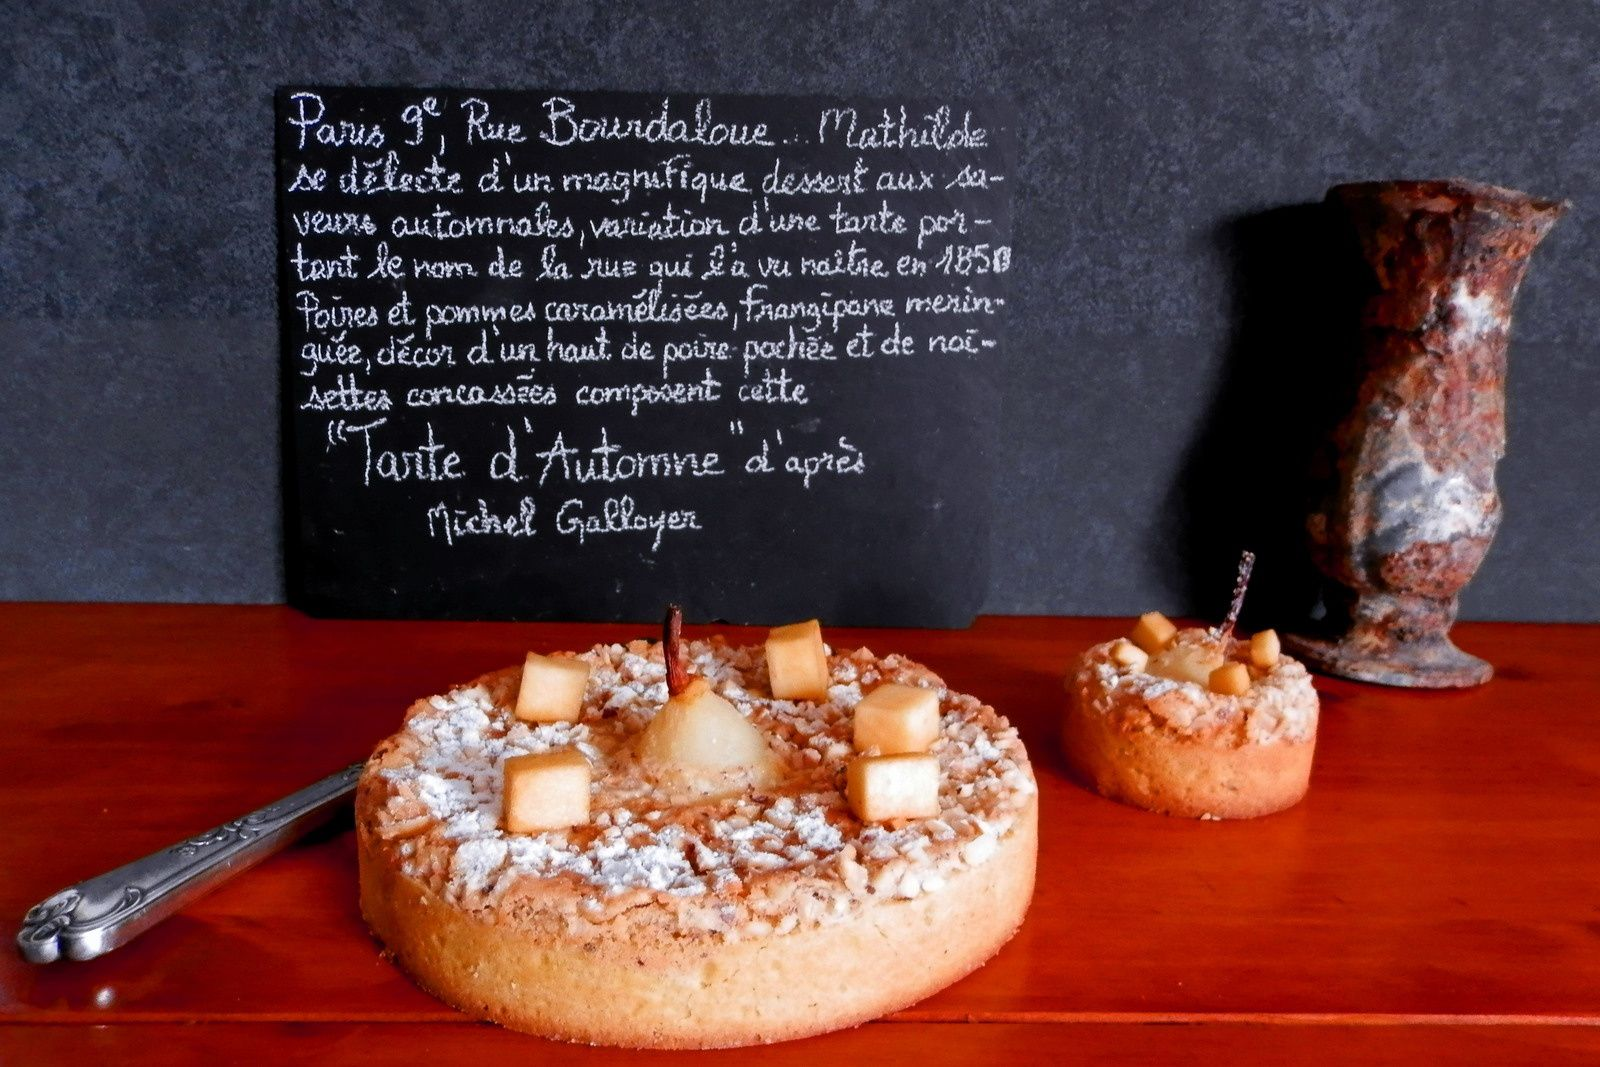 Tarte d'Automne ou Tarte Bourdaloue version Michel Galloyer